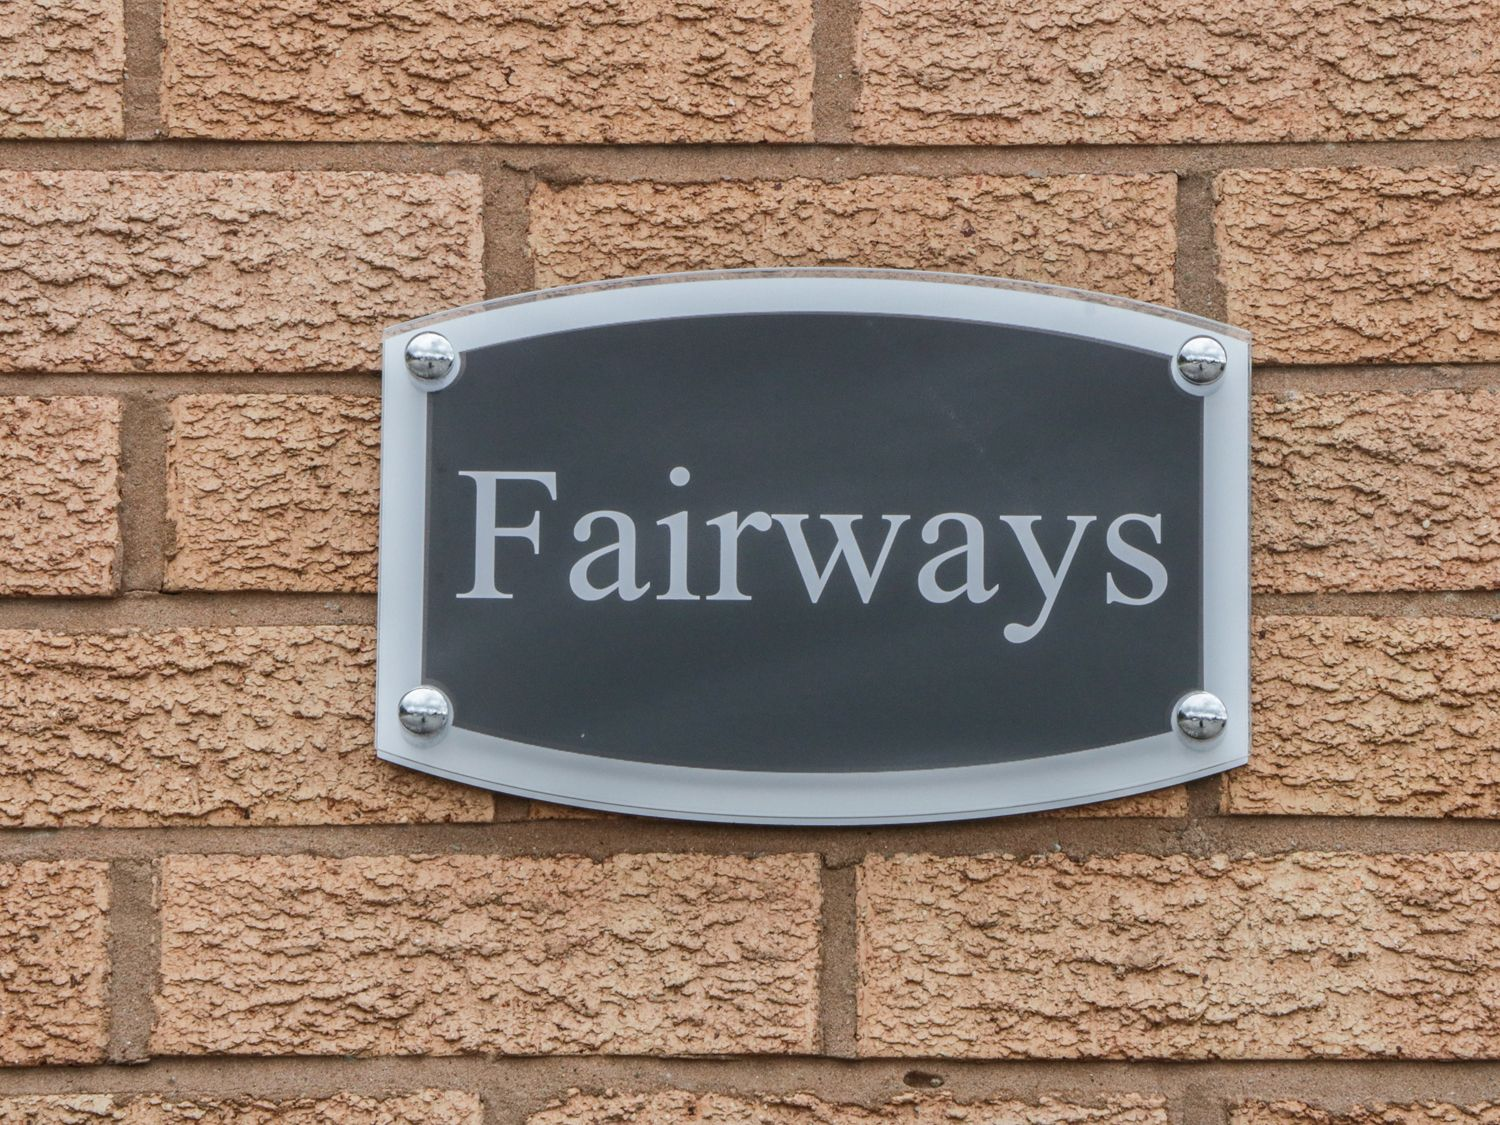 Fairways - North Wales - 973413 - photo 1